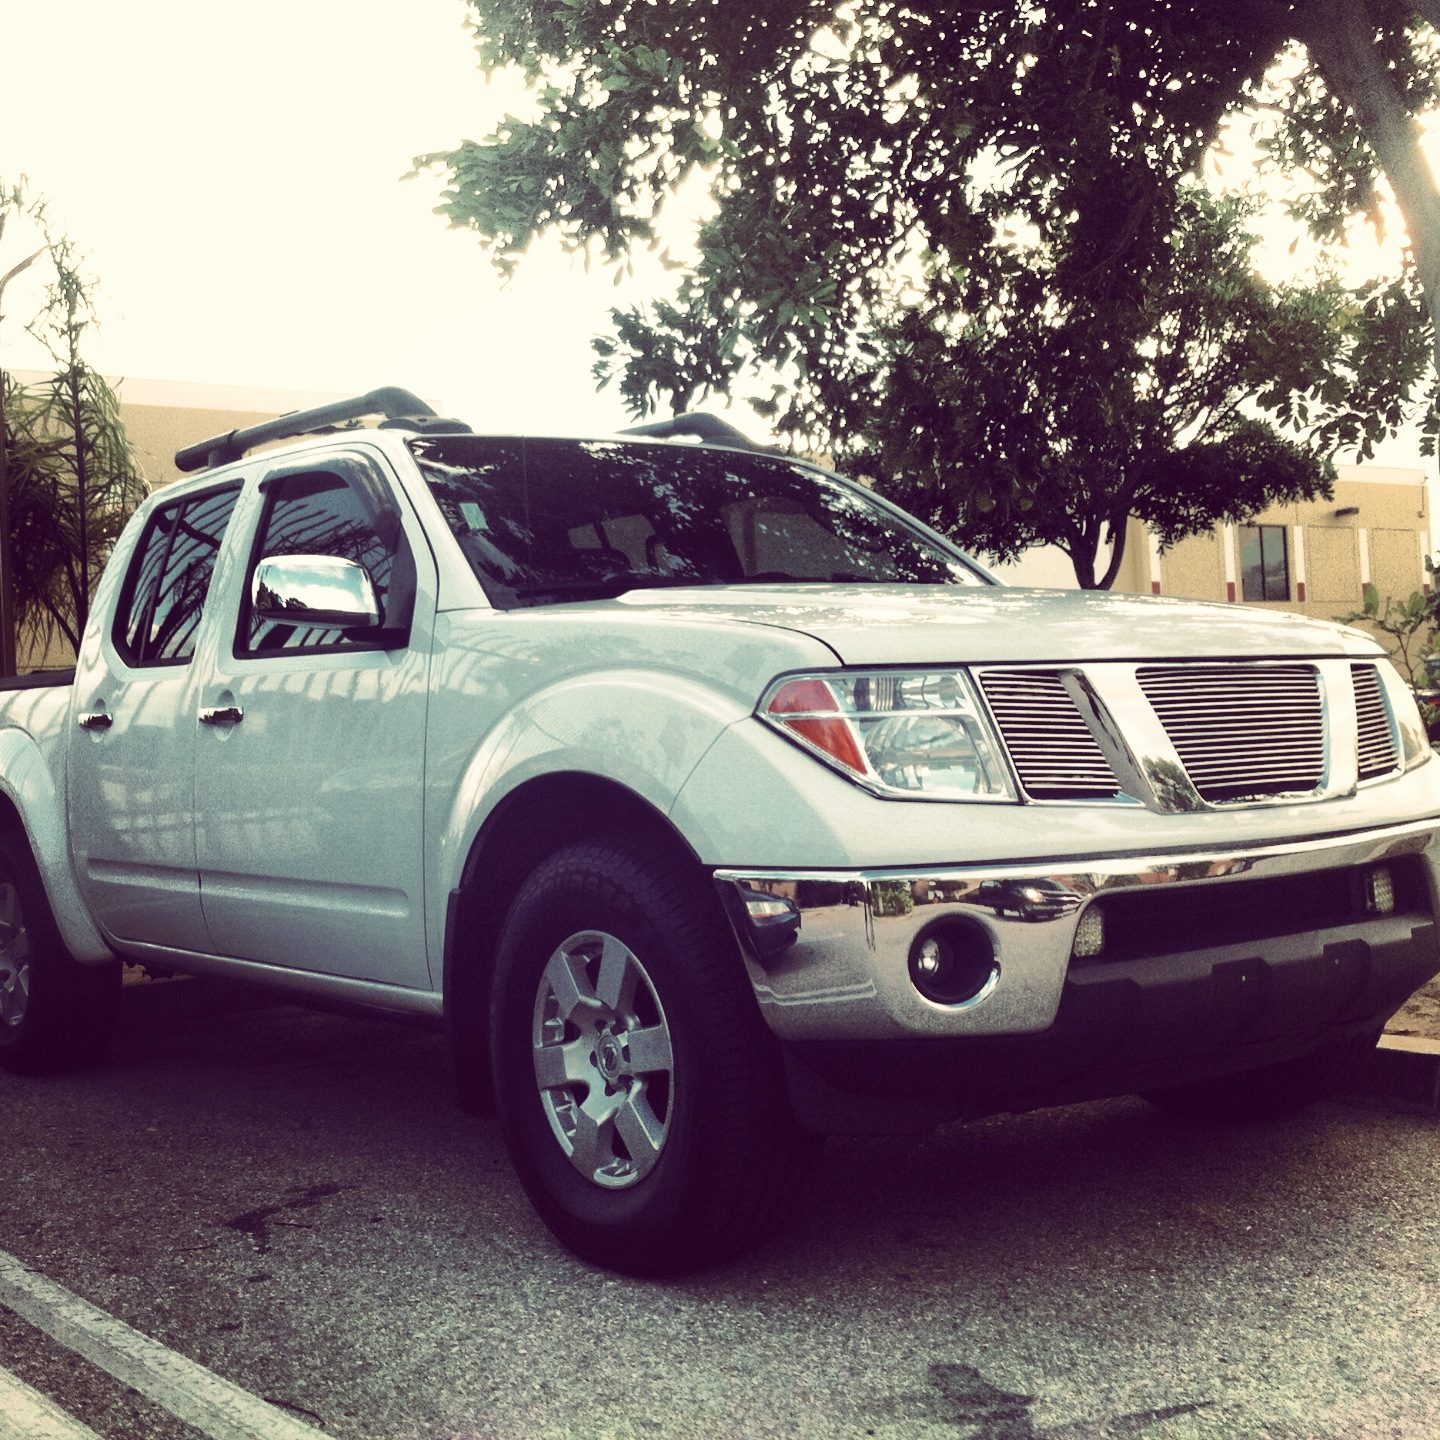 2001 Nissan Frontier King Cab Camshaft: 2007 Nissan Frontier Crew Cab